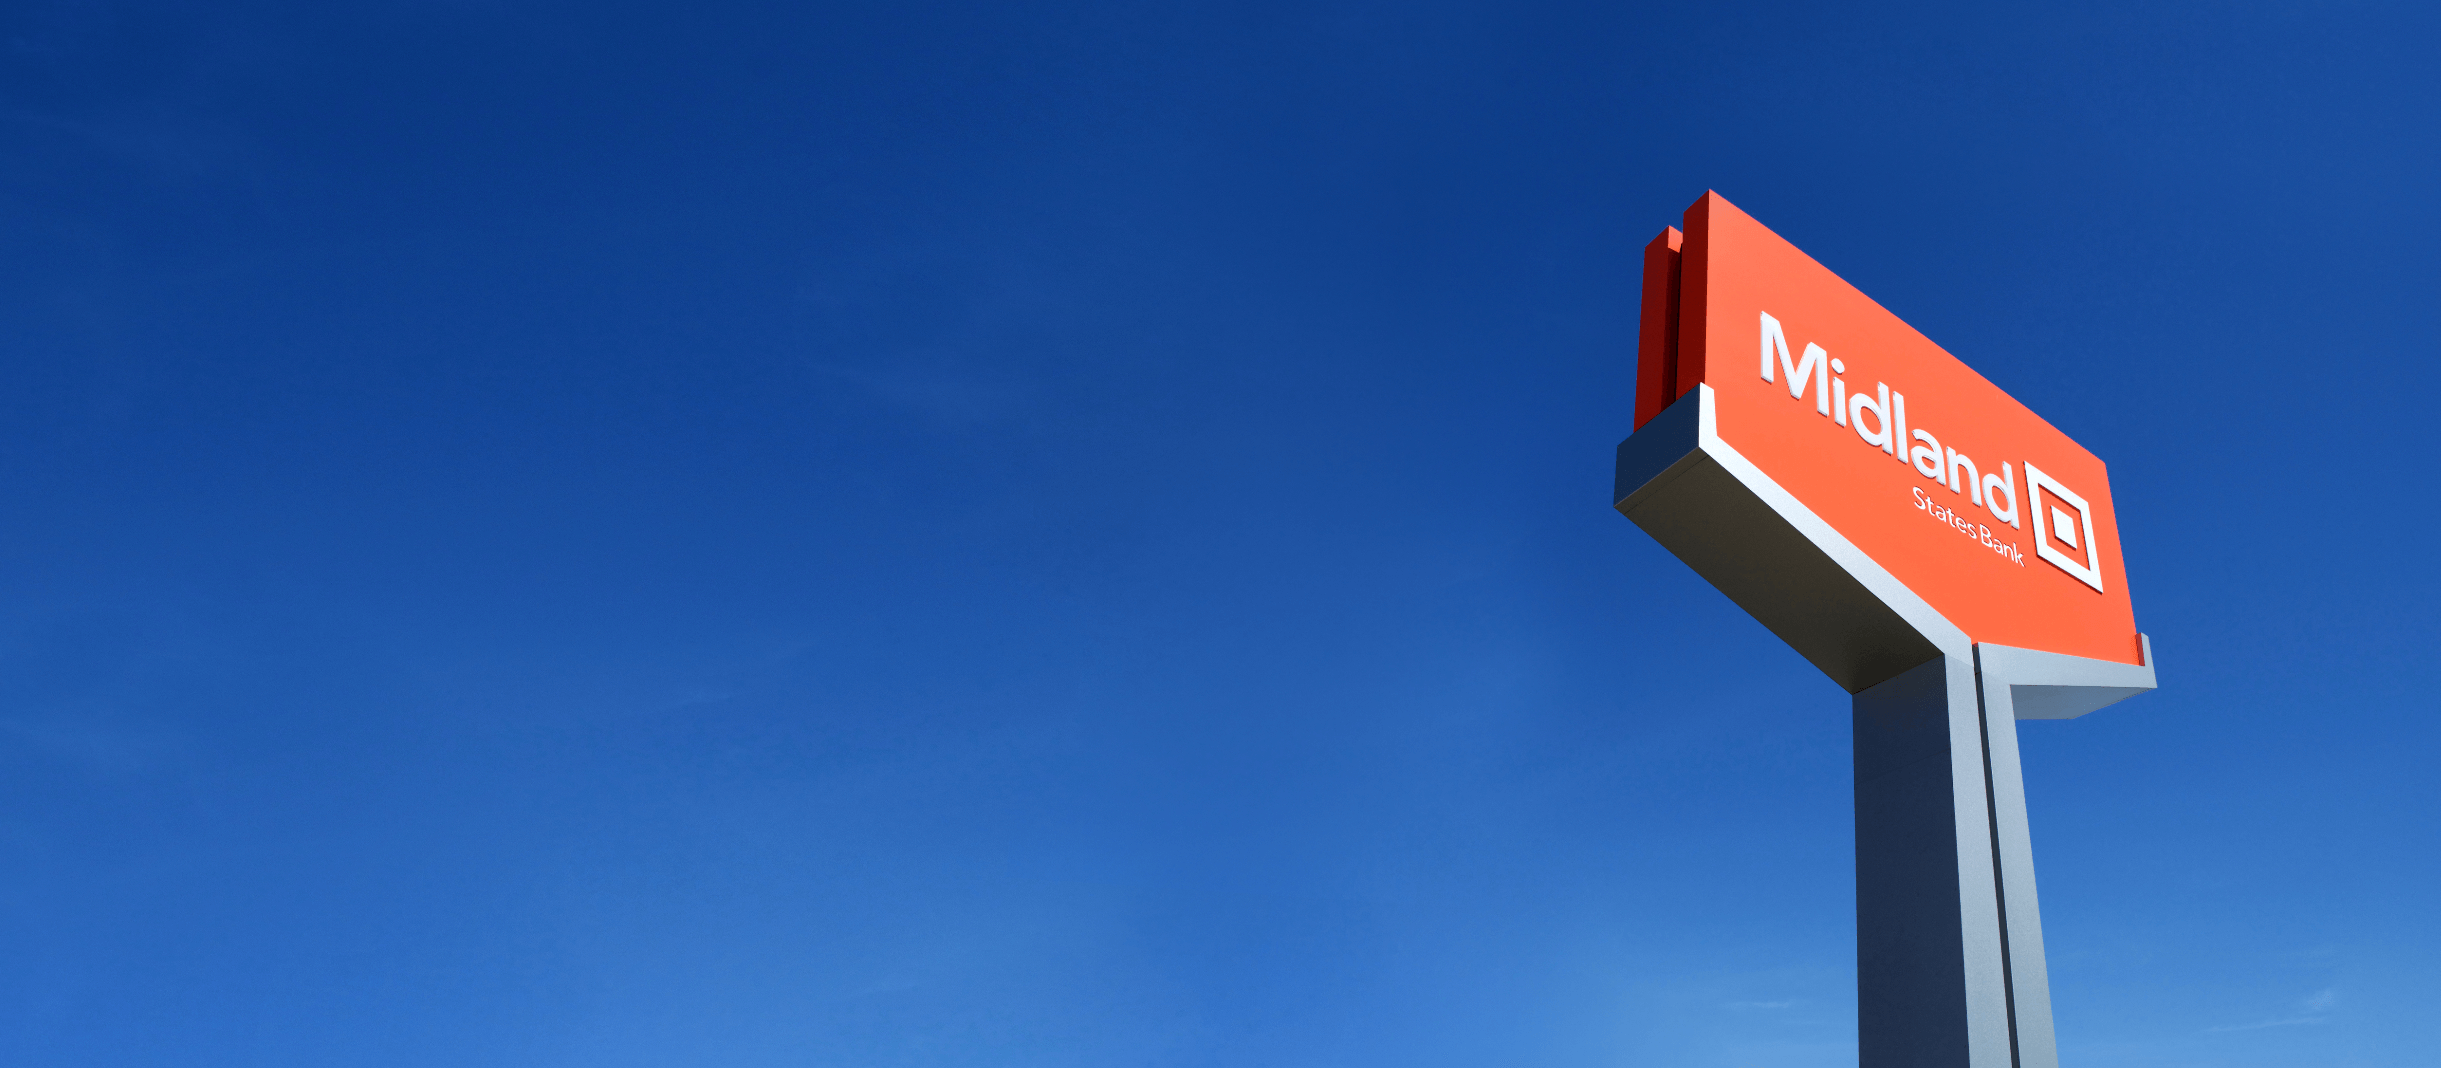 Midland States Bank sign in front of blue sky